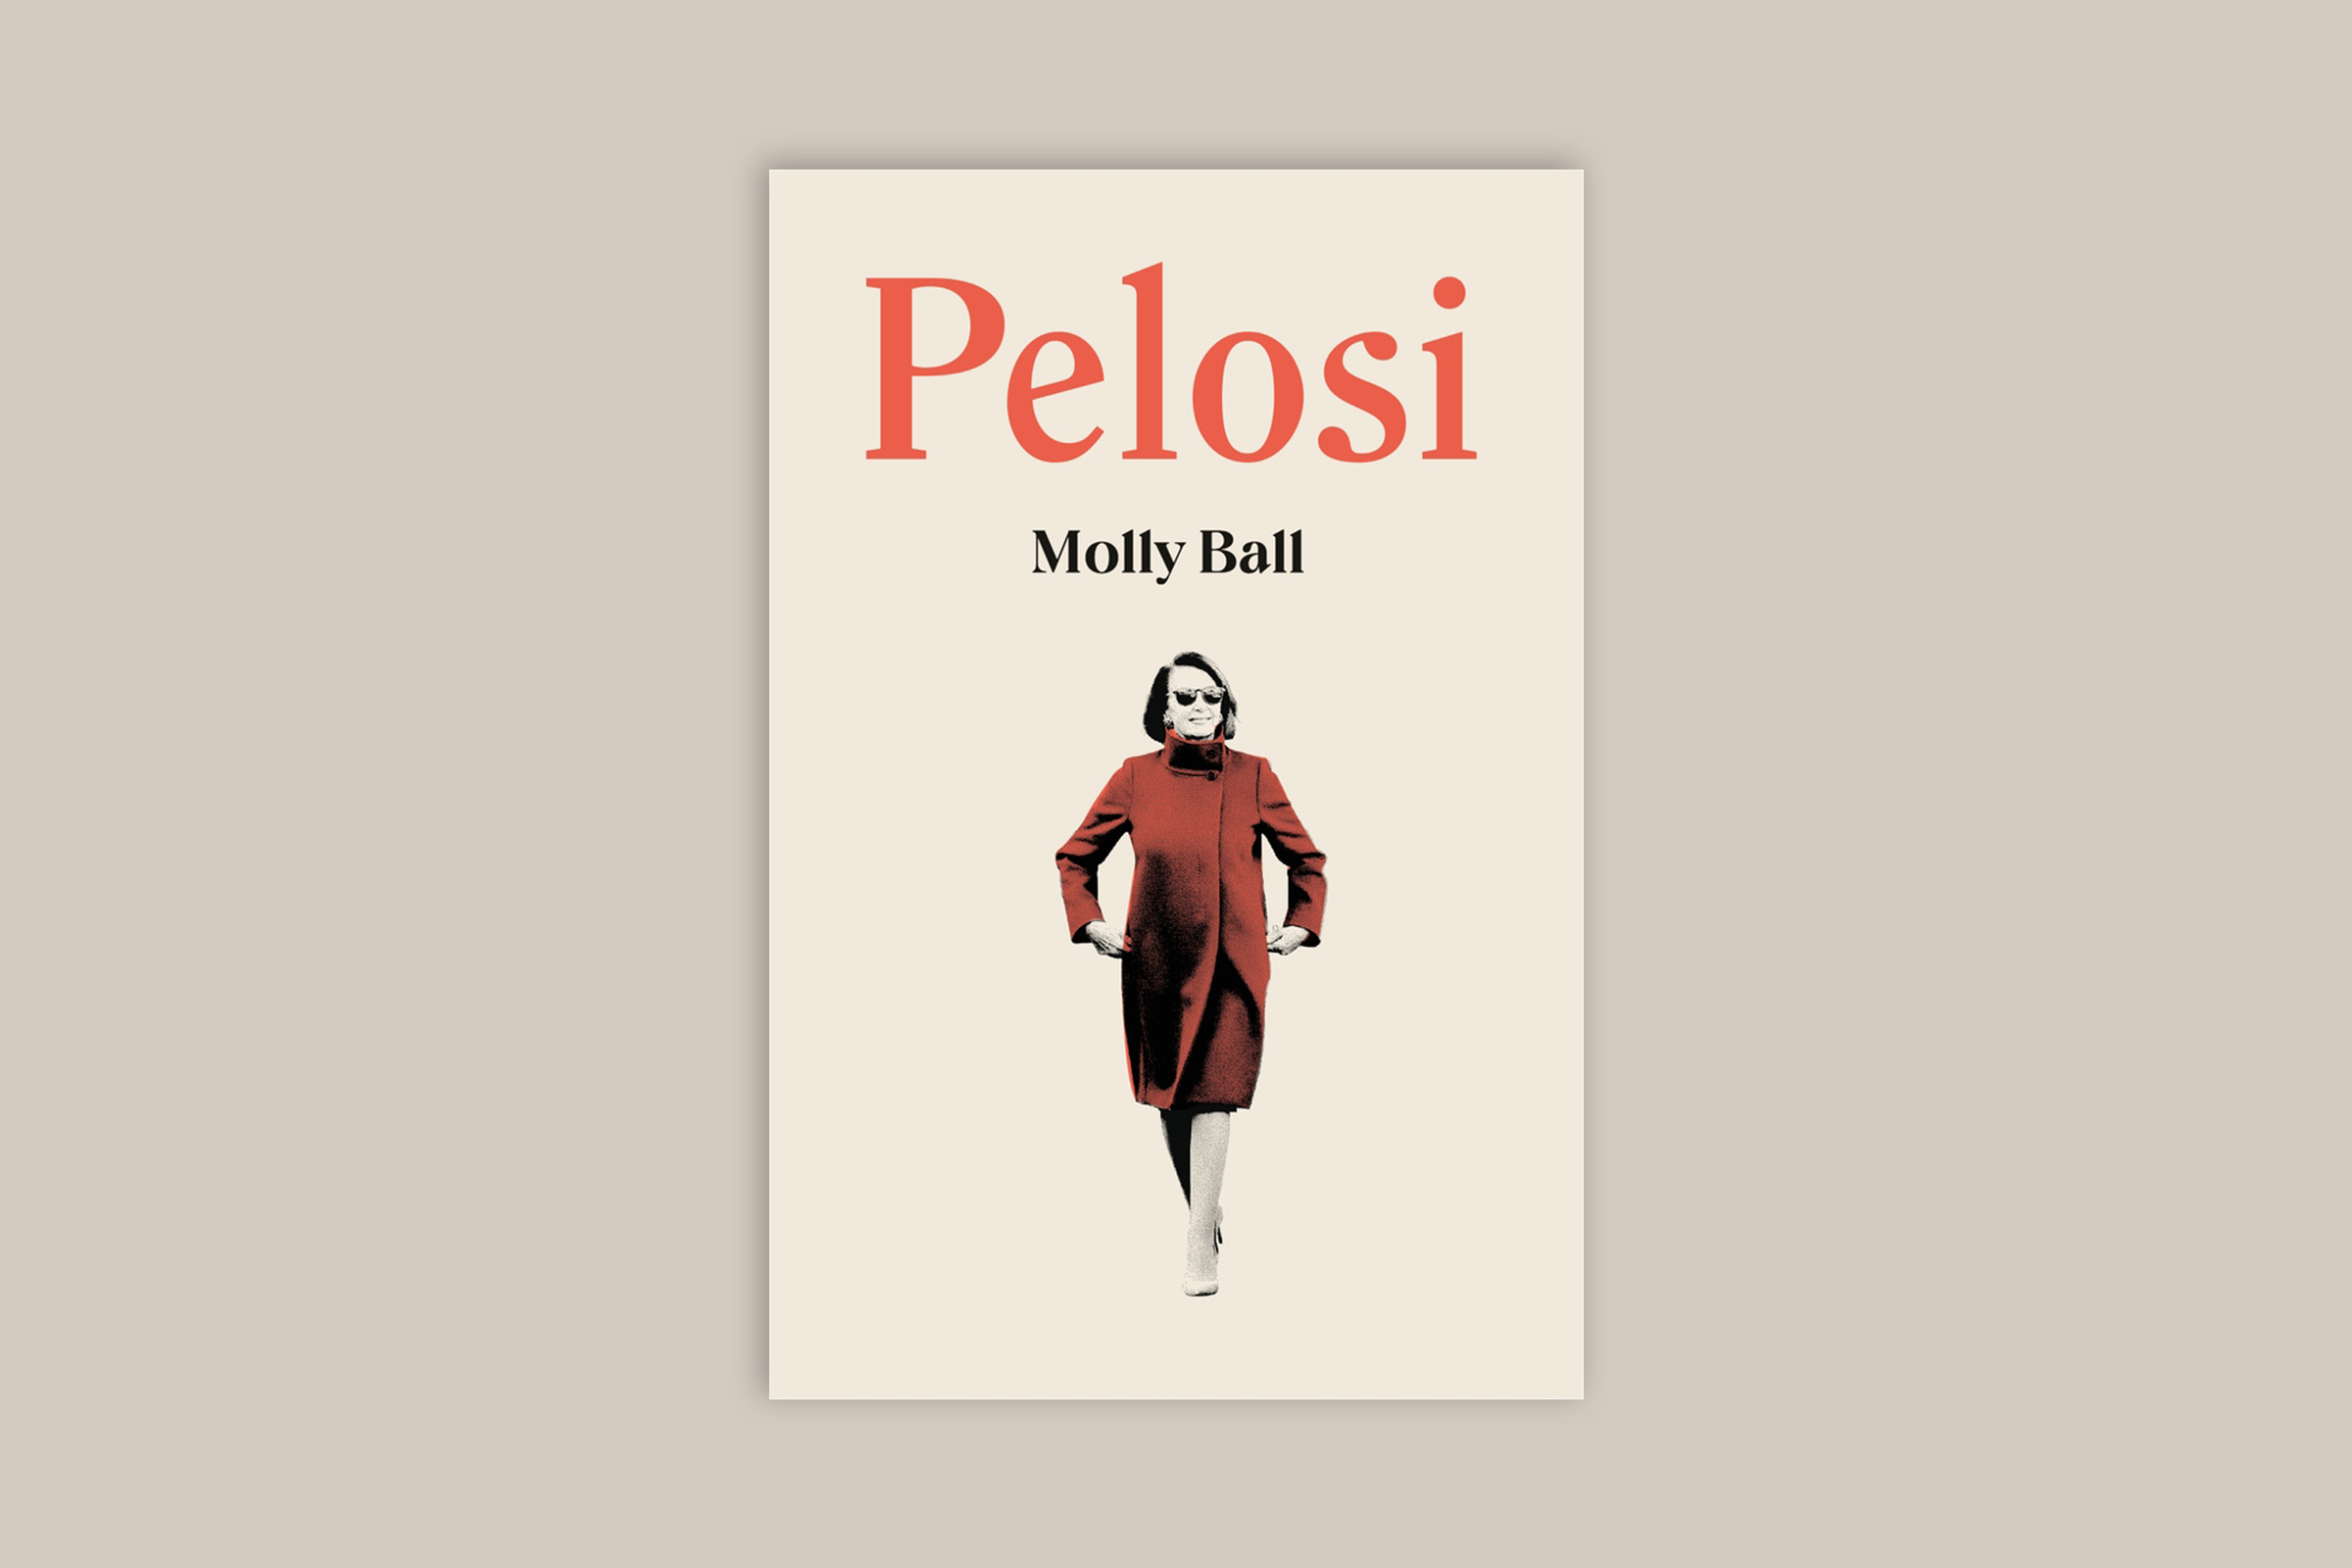 PELOSI, by Molly Ball. Published by Henry Holt and Company May 5th 2020